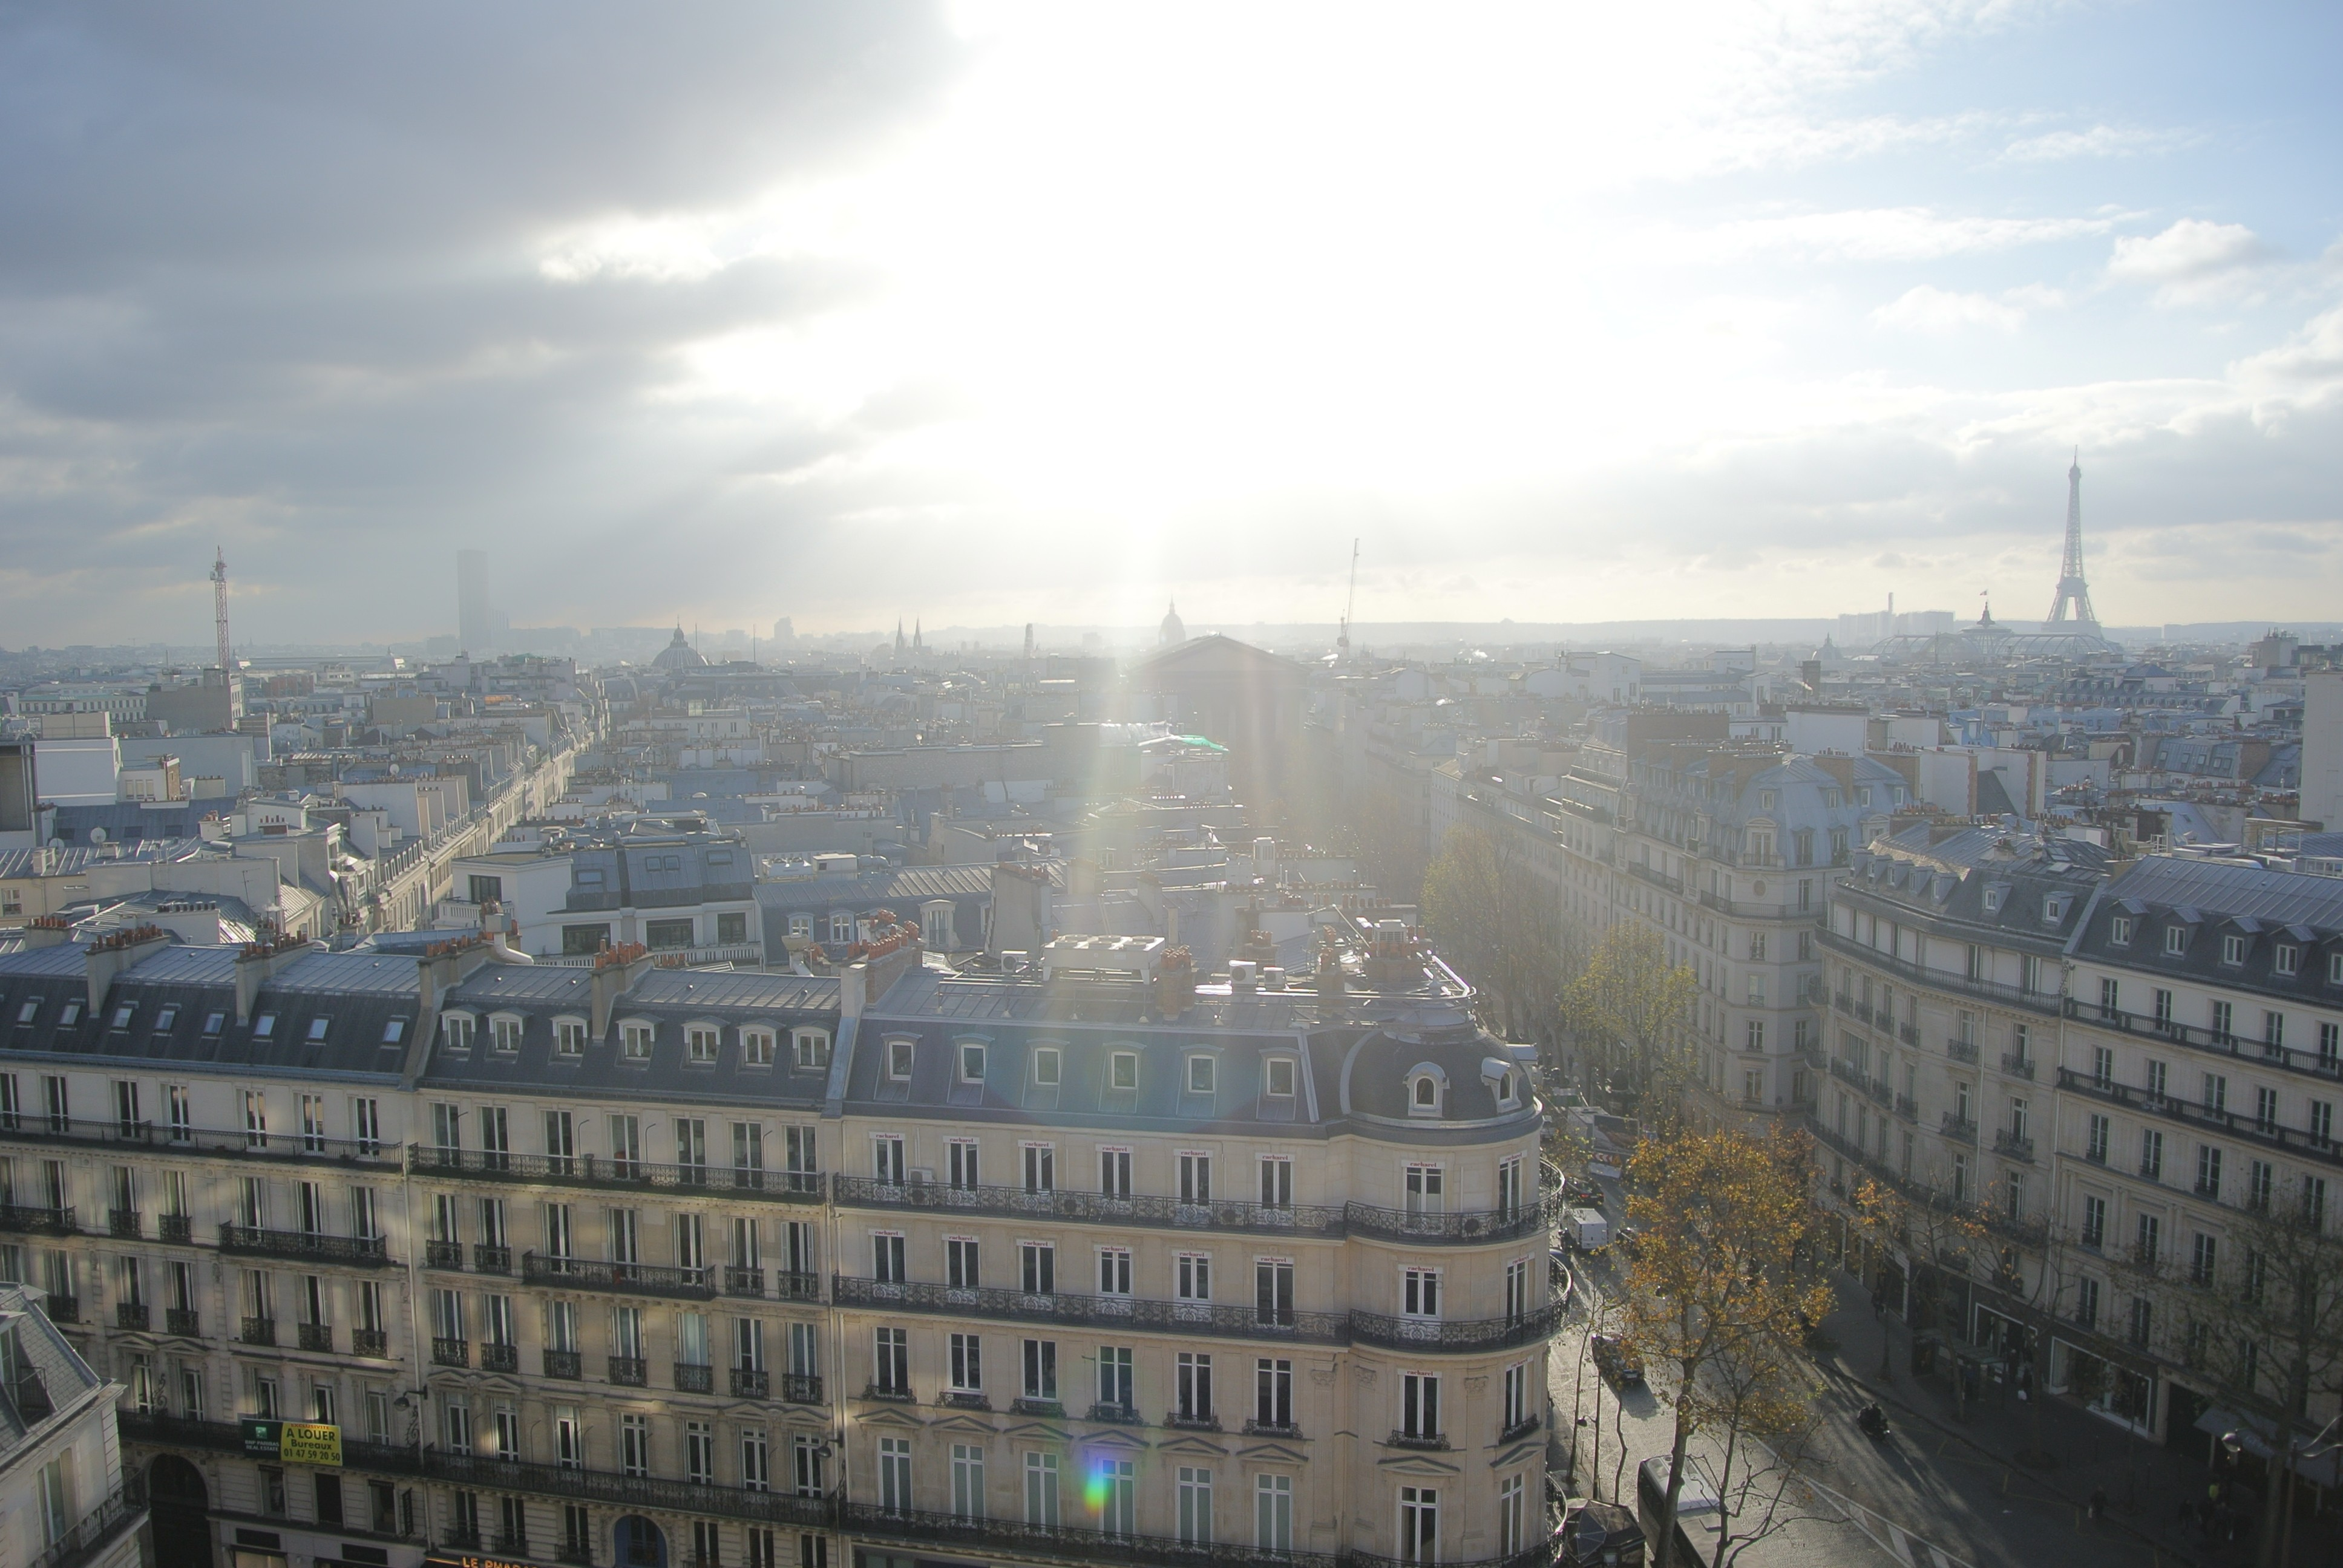 View of Eiffel Tower and Paris | Todd's Travels Travel Blog